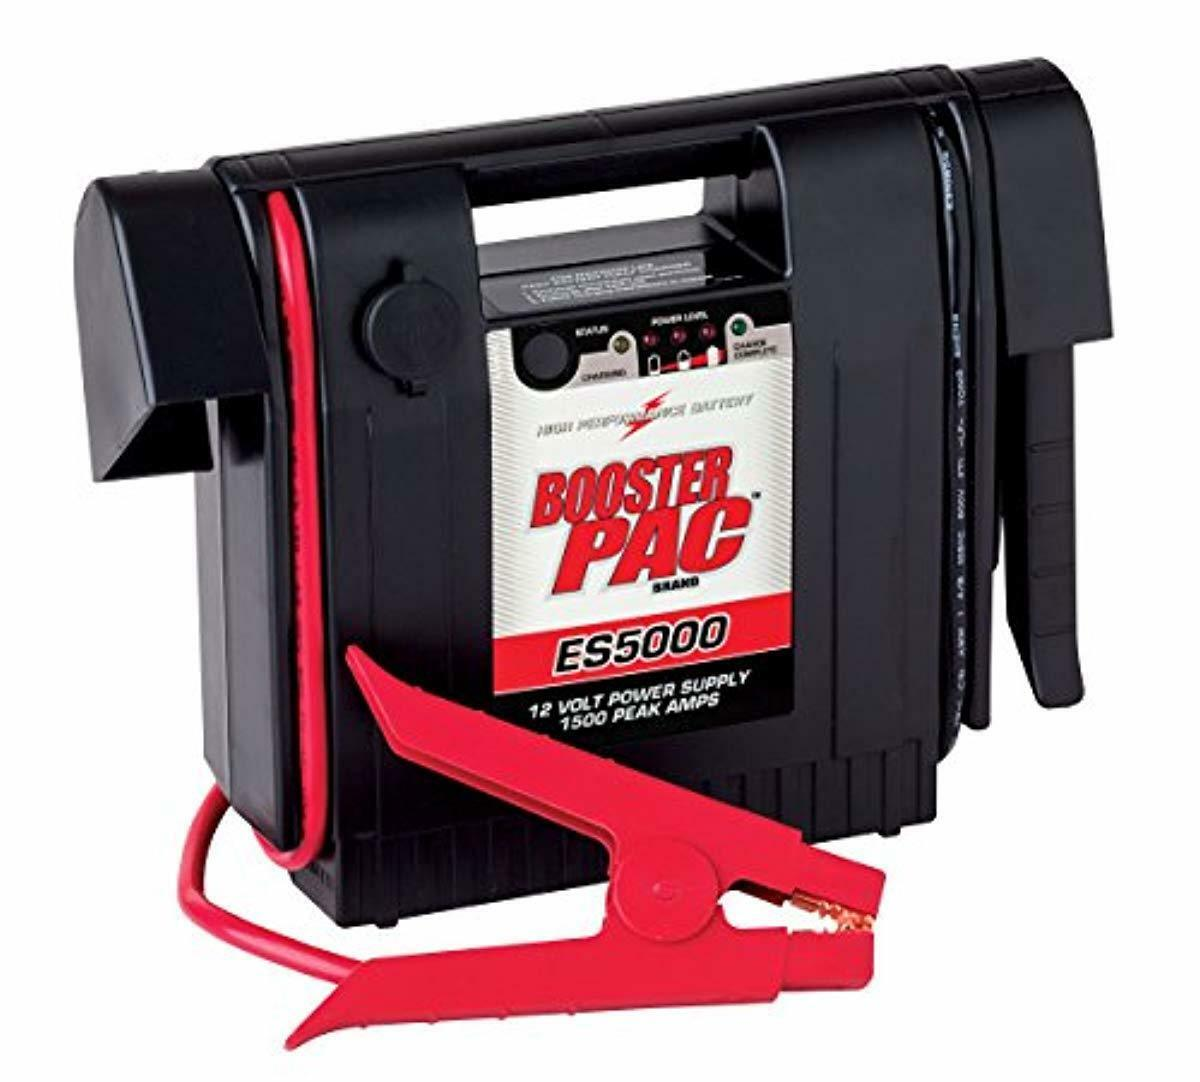 Booster Pac ES5000, 12V Booster Pack 1500 Amp Peak with Free shipping